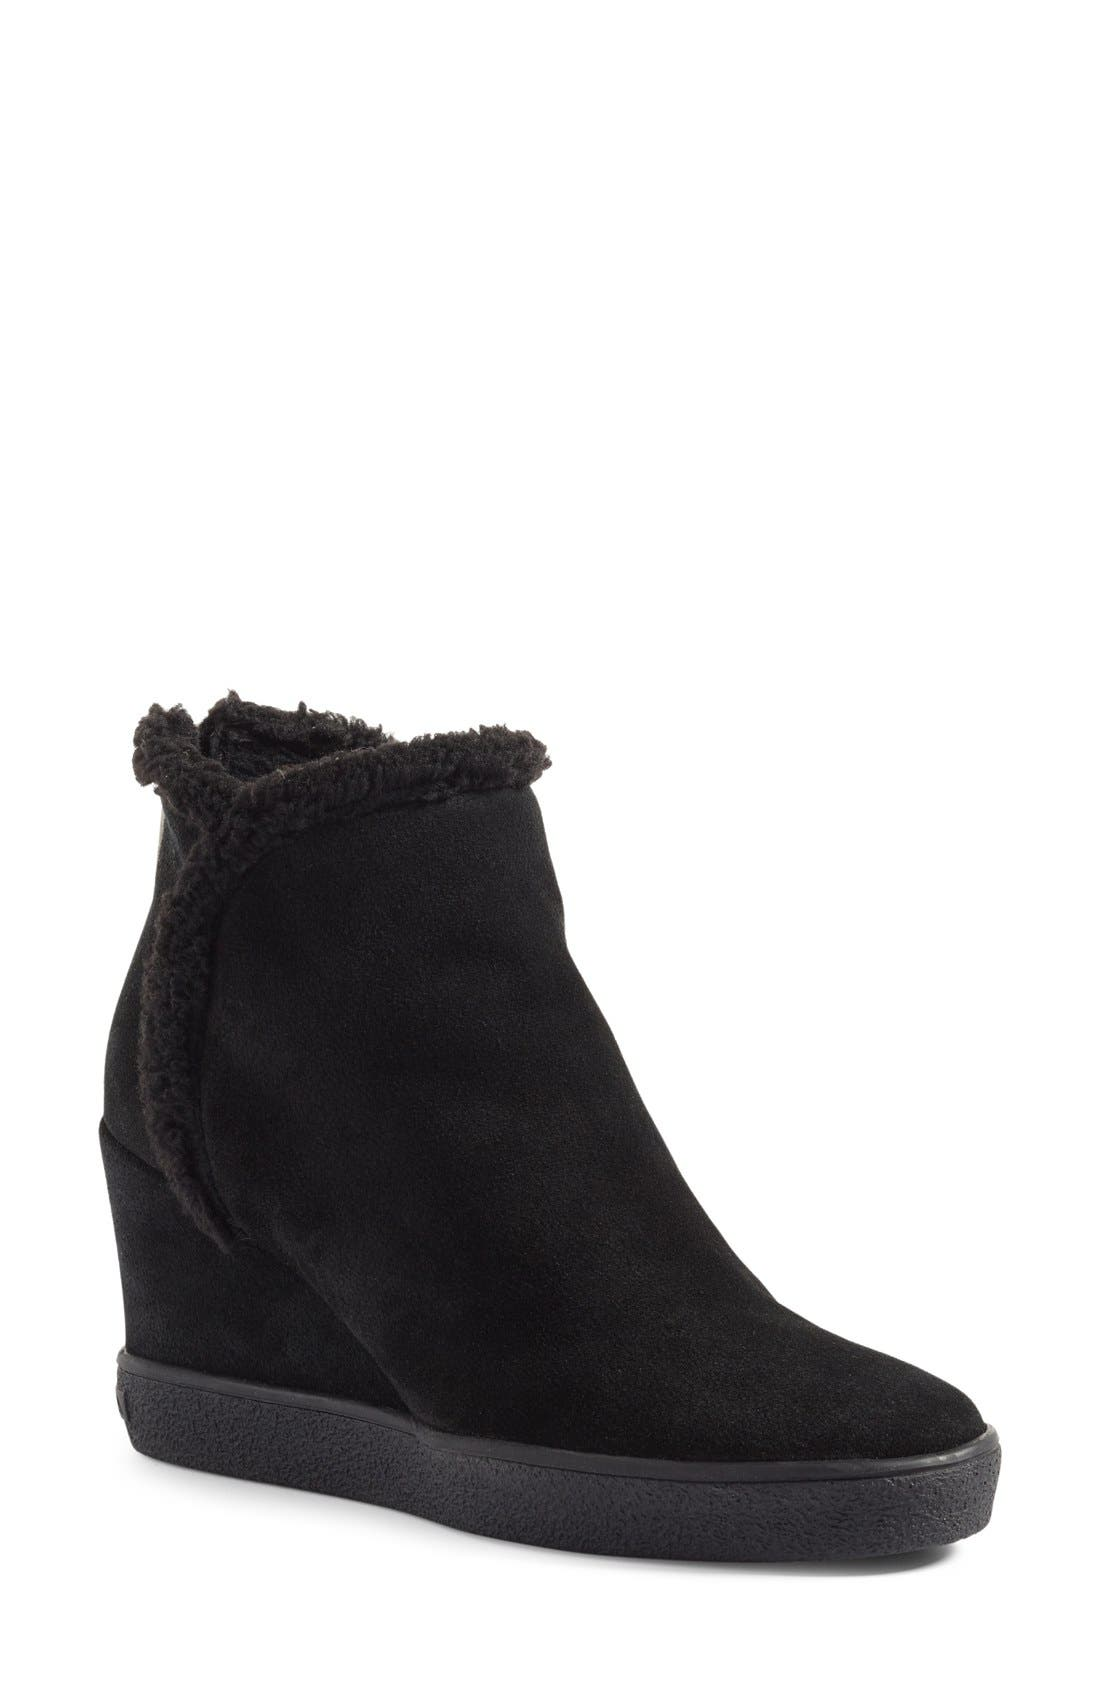 Charlie Weatherproof Hidden Wedge Bootie, Main, color, 001